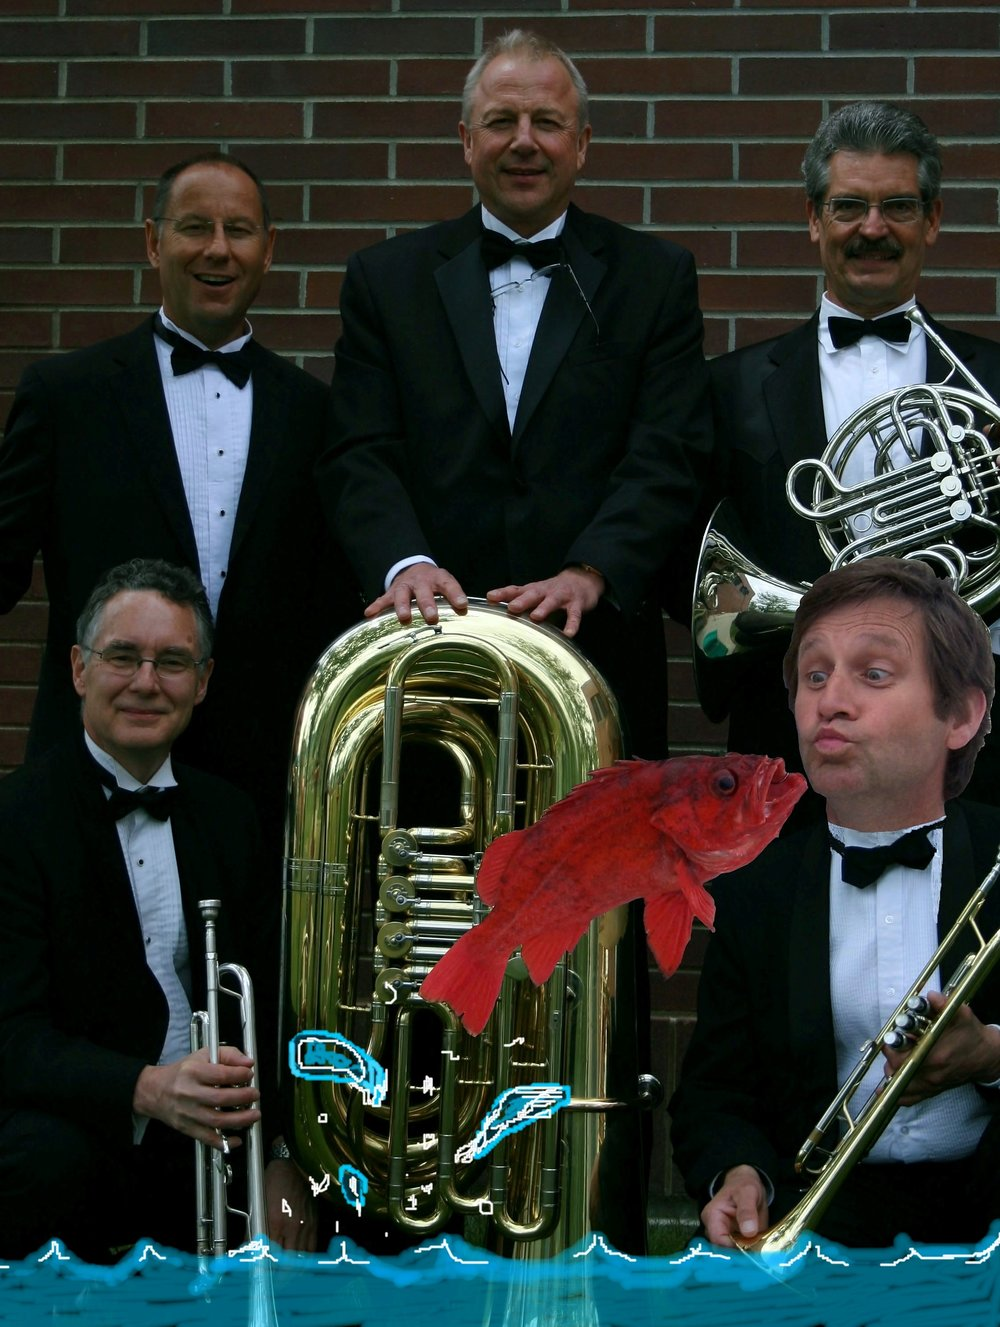 Fish on Five brass quintet